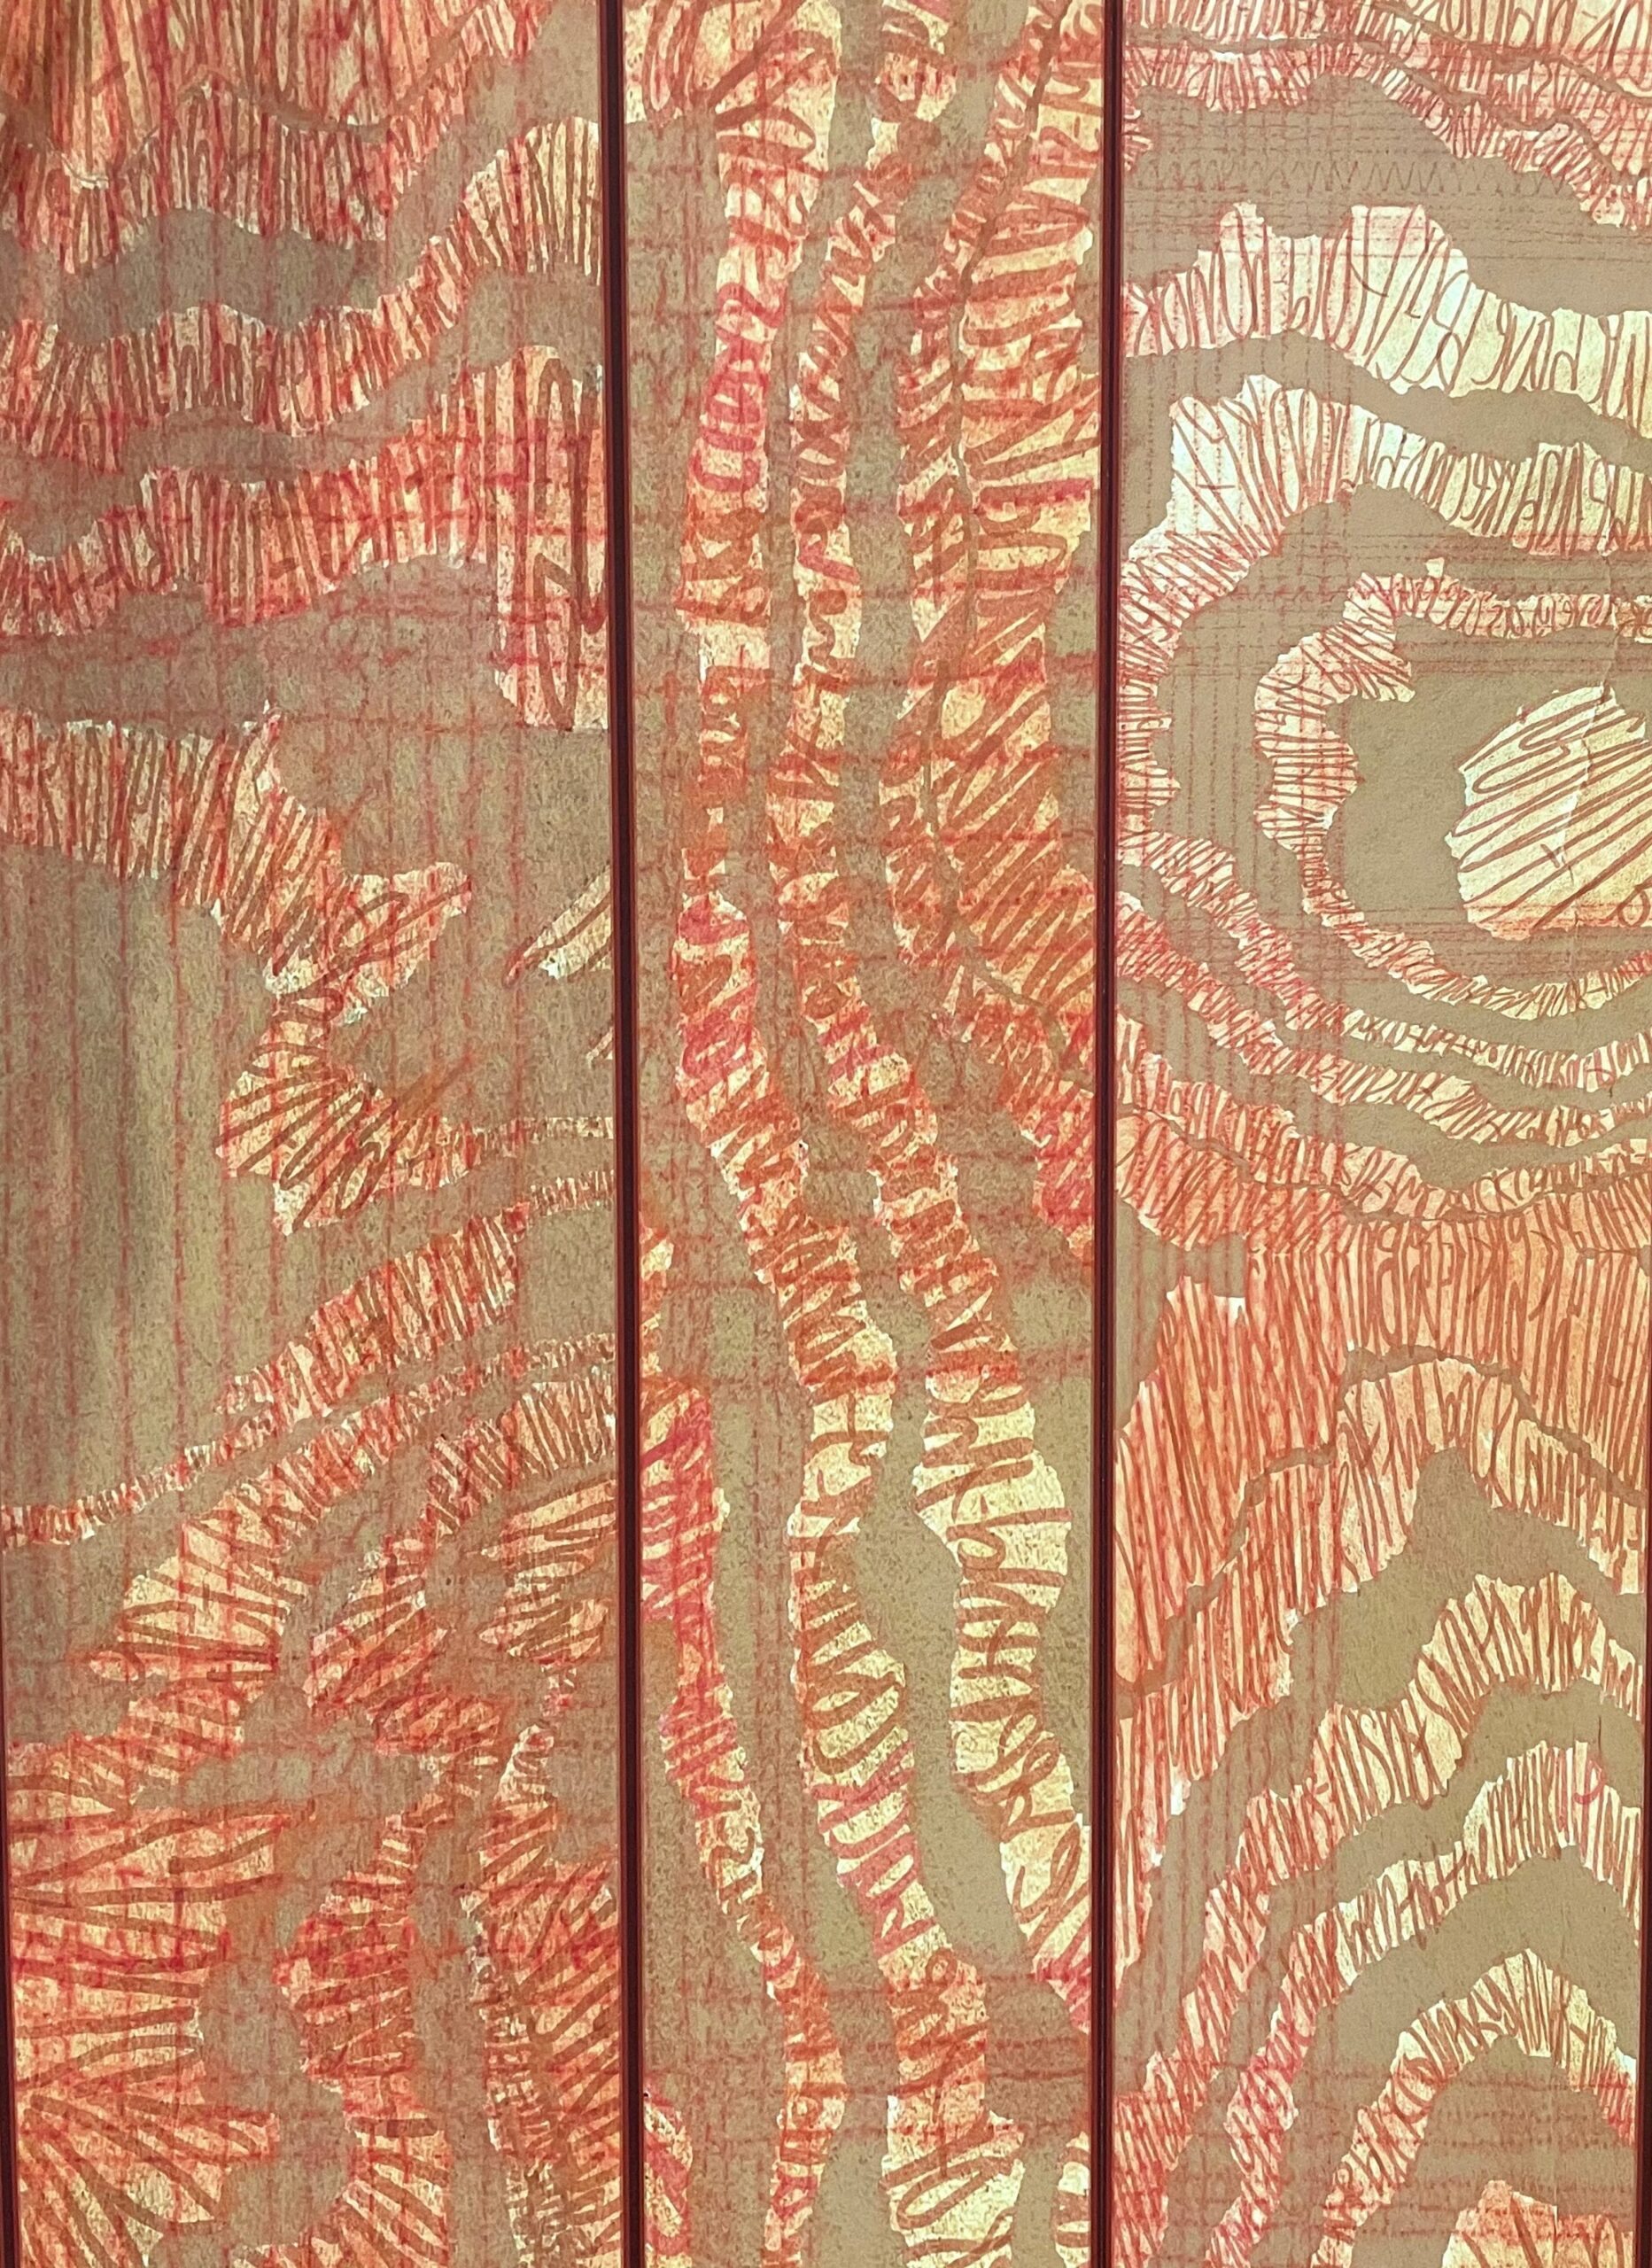 Close up of wallpaper with wood grain and writing details